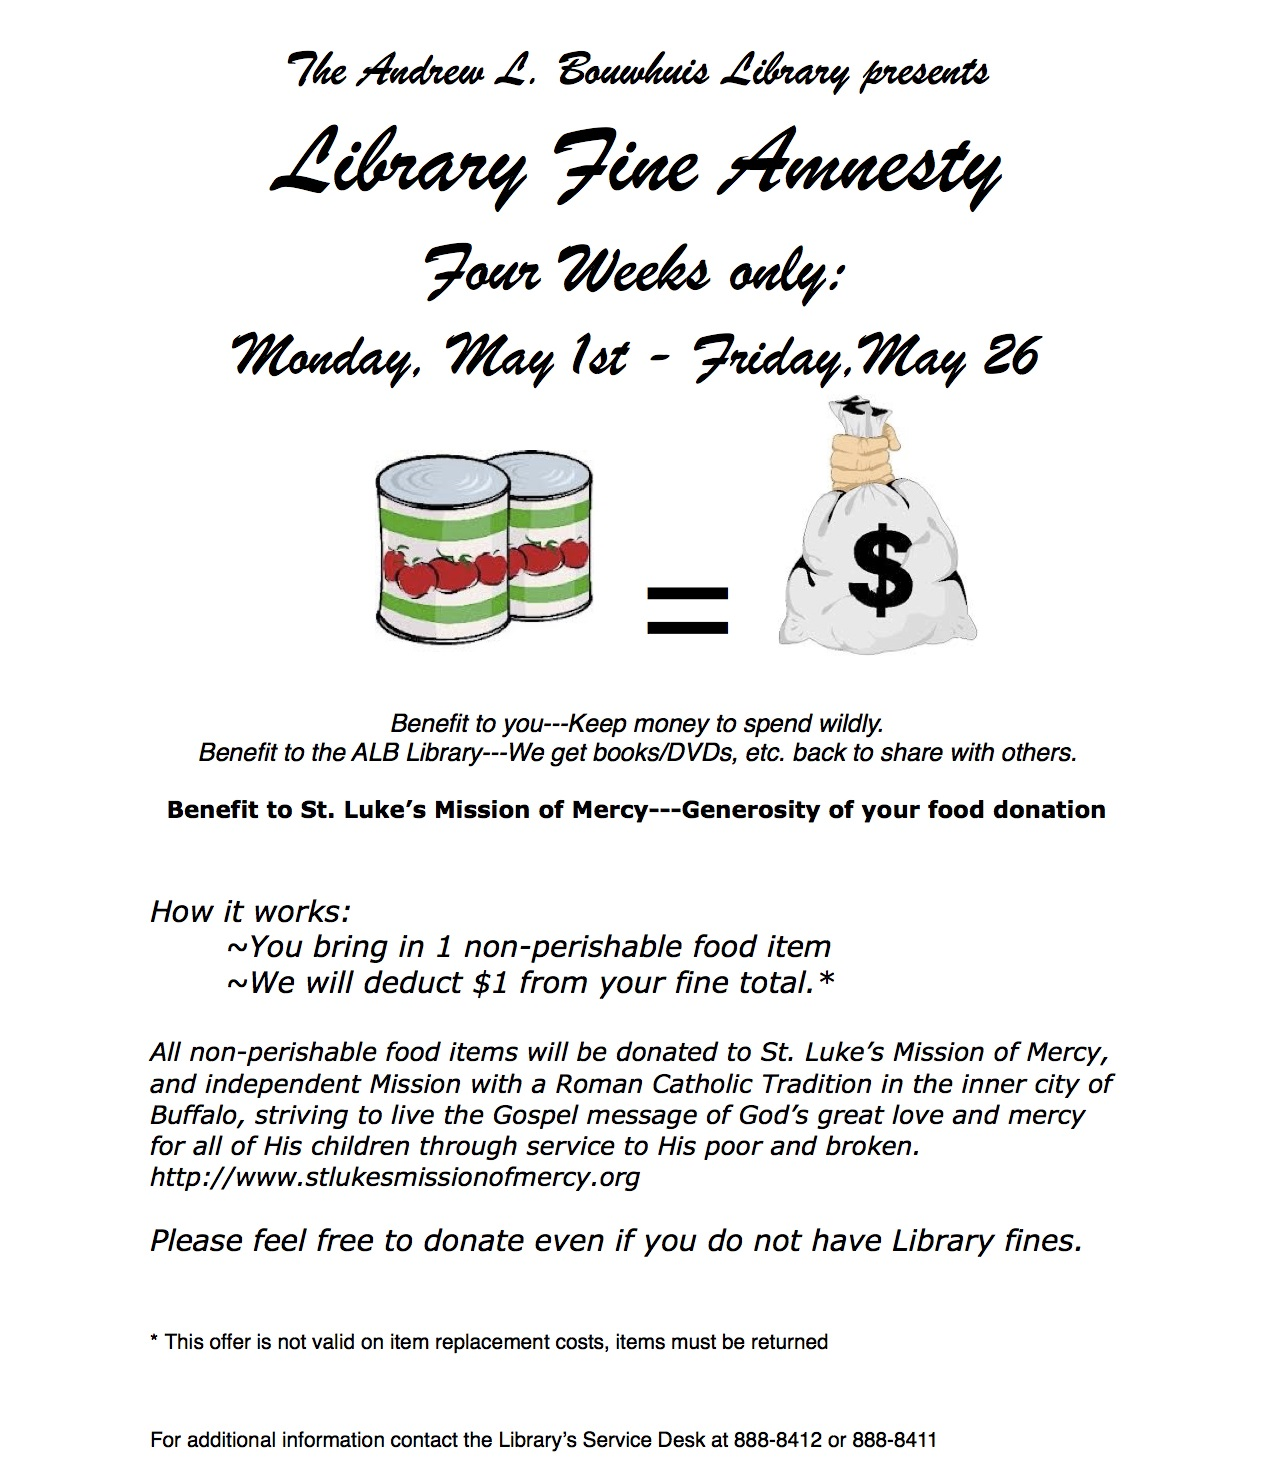 library fine amnesty, may 1st through may 26, 1 non-perishable food item for 1 dollar fine deduction